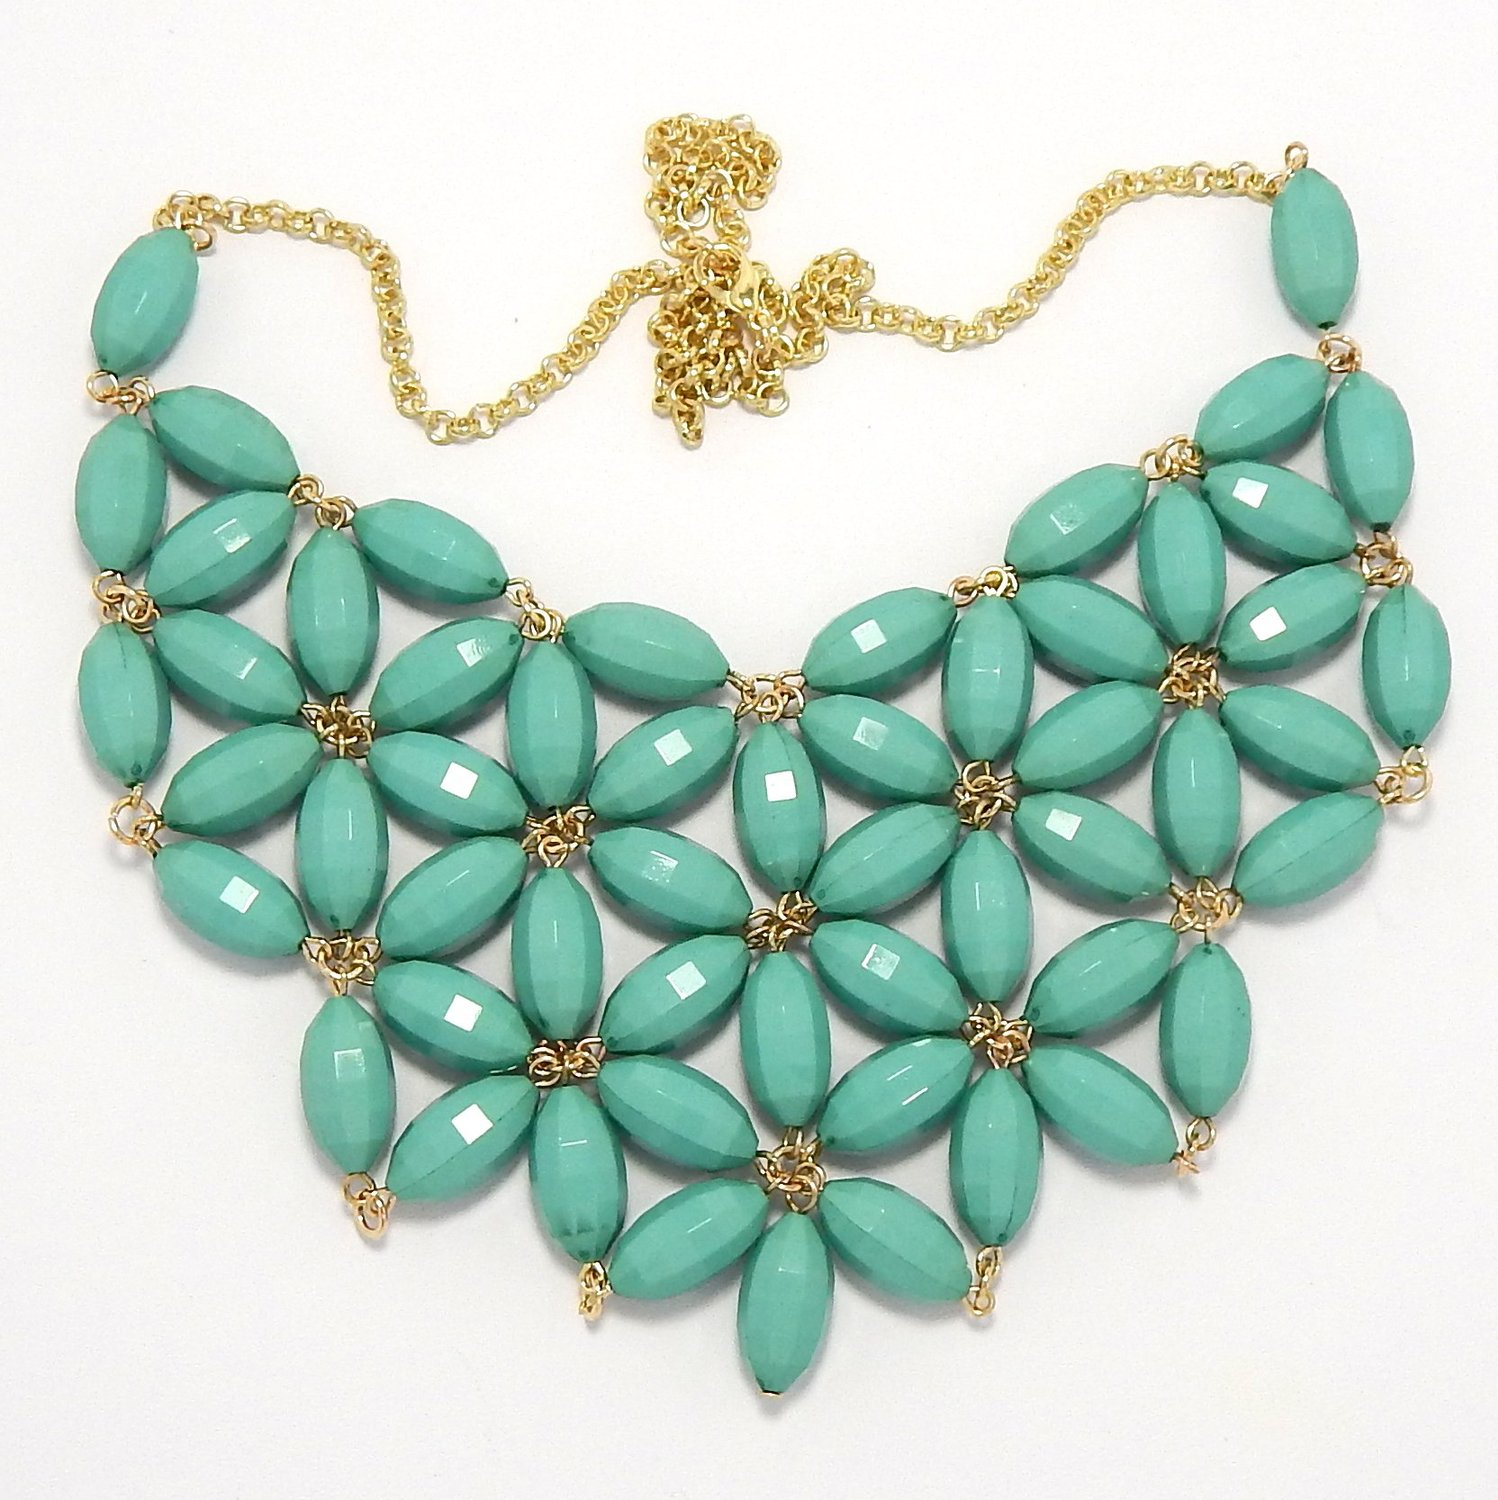 Amazon.com: Pro Jewelry Bib Bauble Necklace in Gold w/ Turquoise Star Design Faceted Barrel Acrylic Beads 0002-4: Jewelry